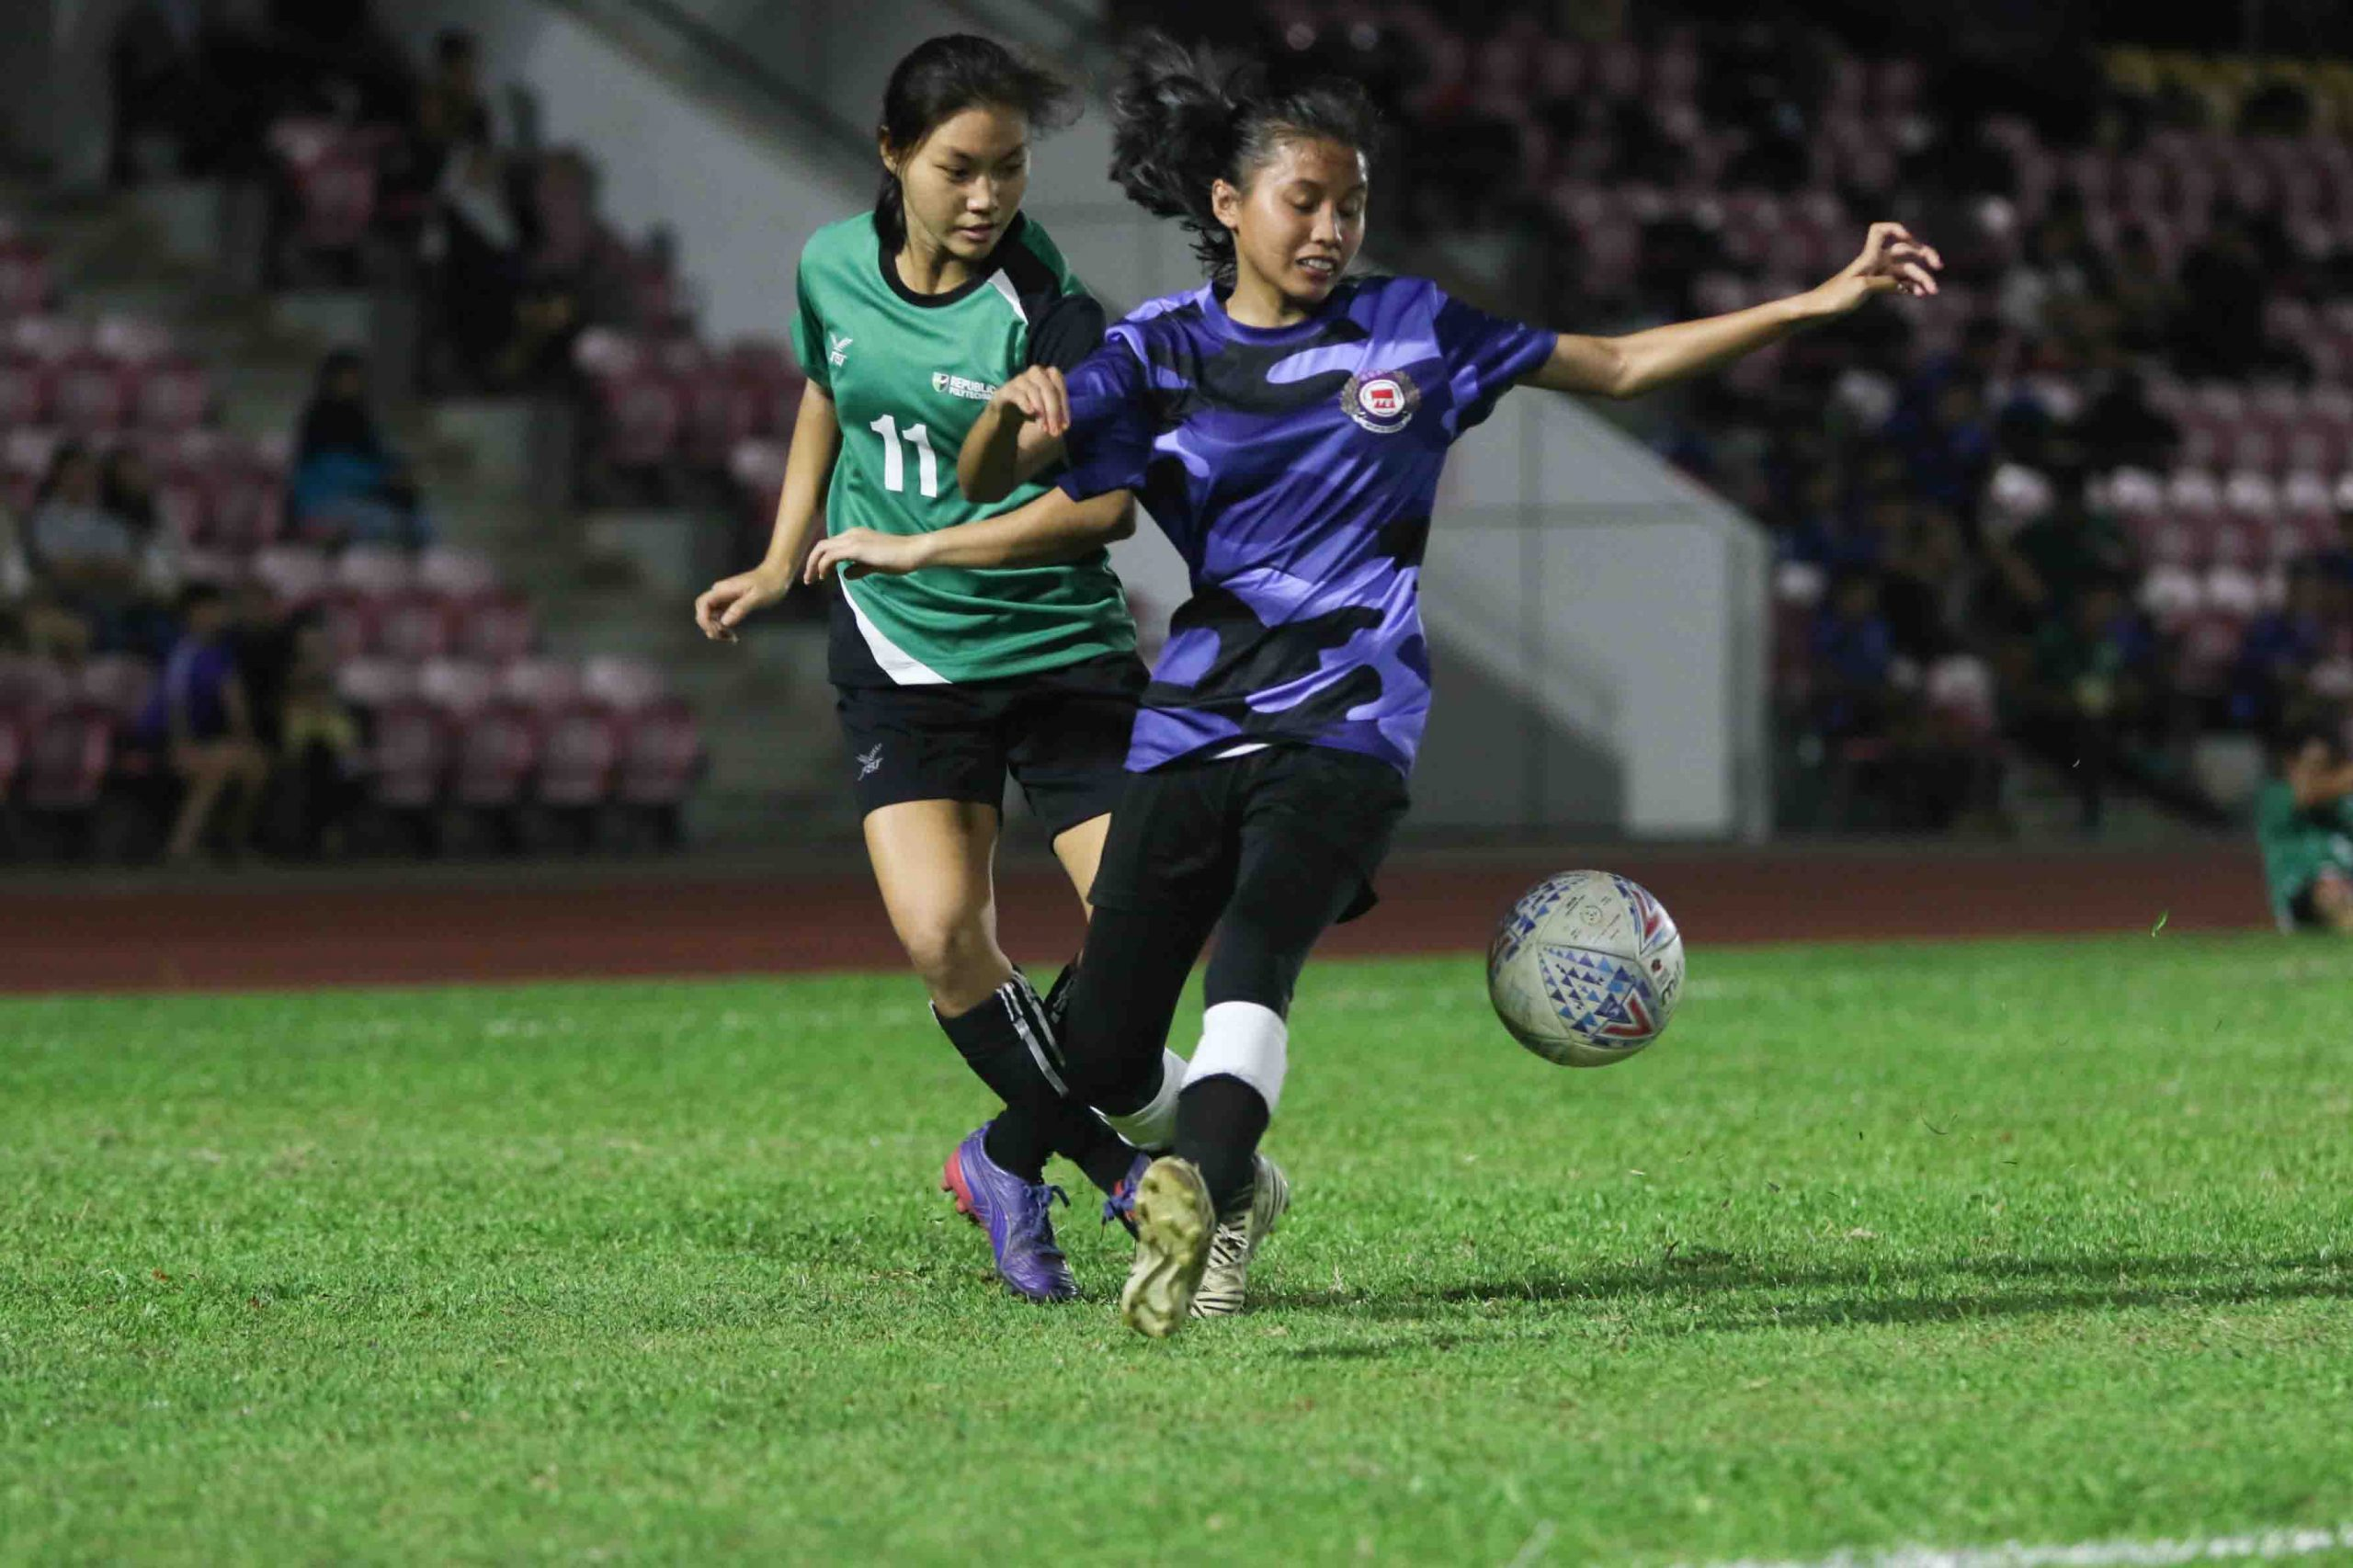 Yuen Choi Sum Jessie (RP #11) sends a cross pass Nur Jannah Bte Khamis (ITE #3) and into the opposition's box. (Photo 1 © Clara Lau/Red Sports)